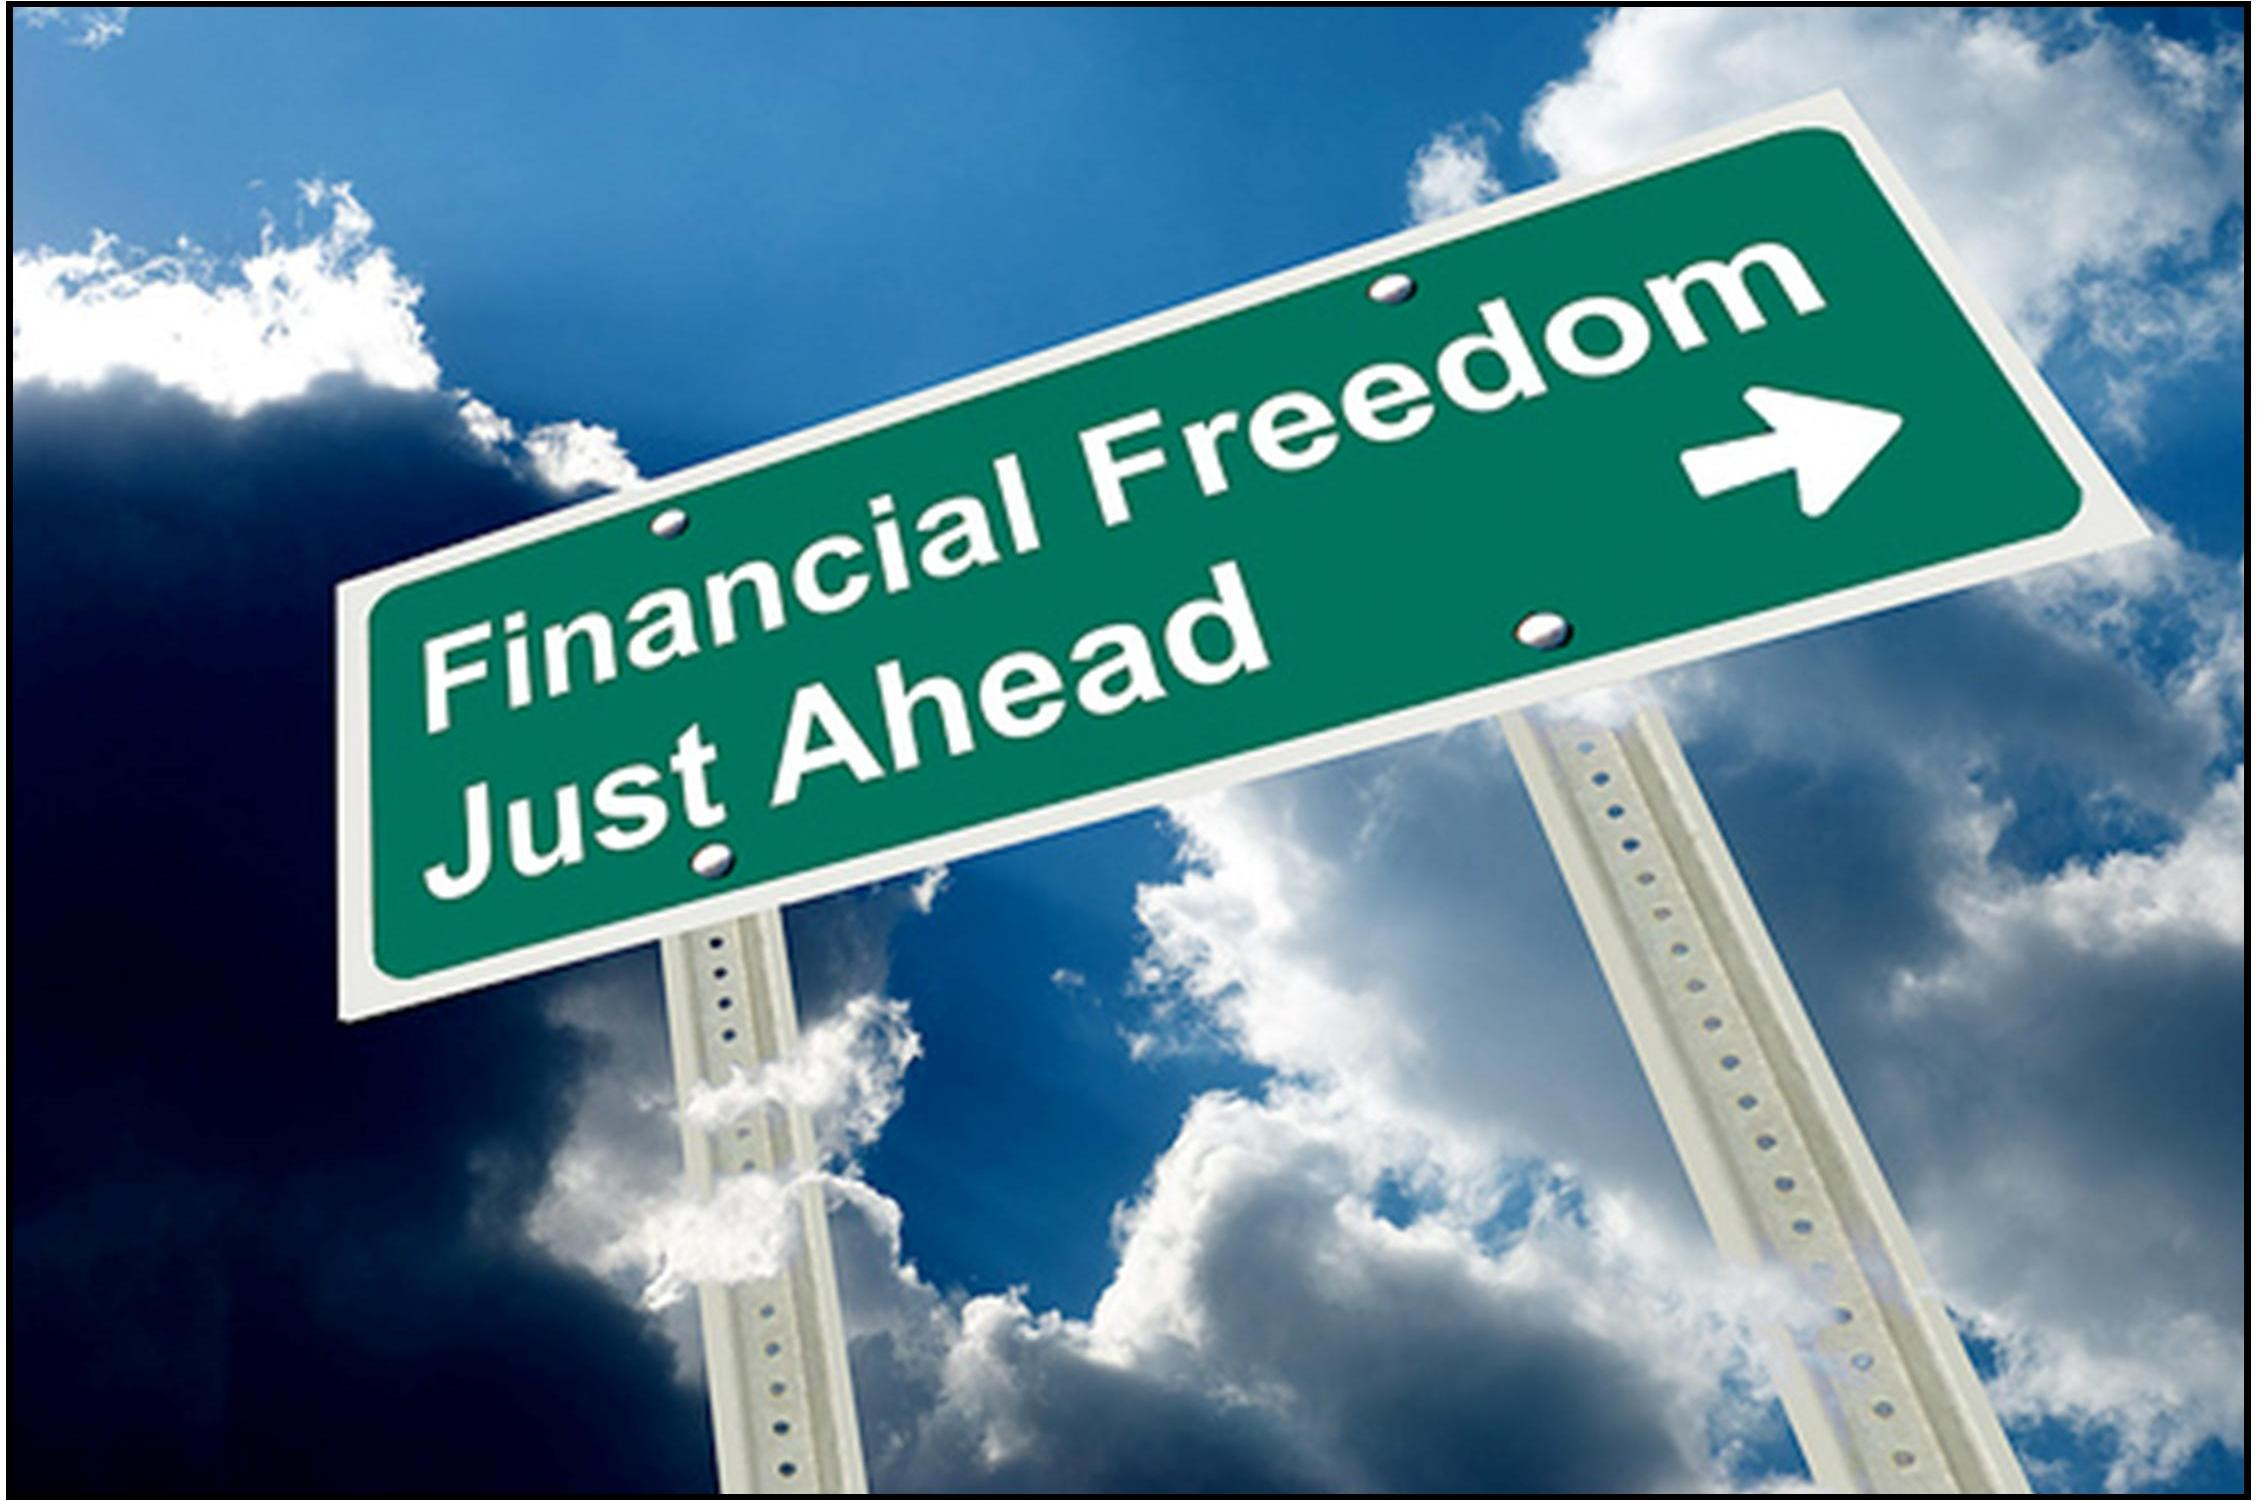 10 Steps for Obtaining Financial Freedom in 2018